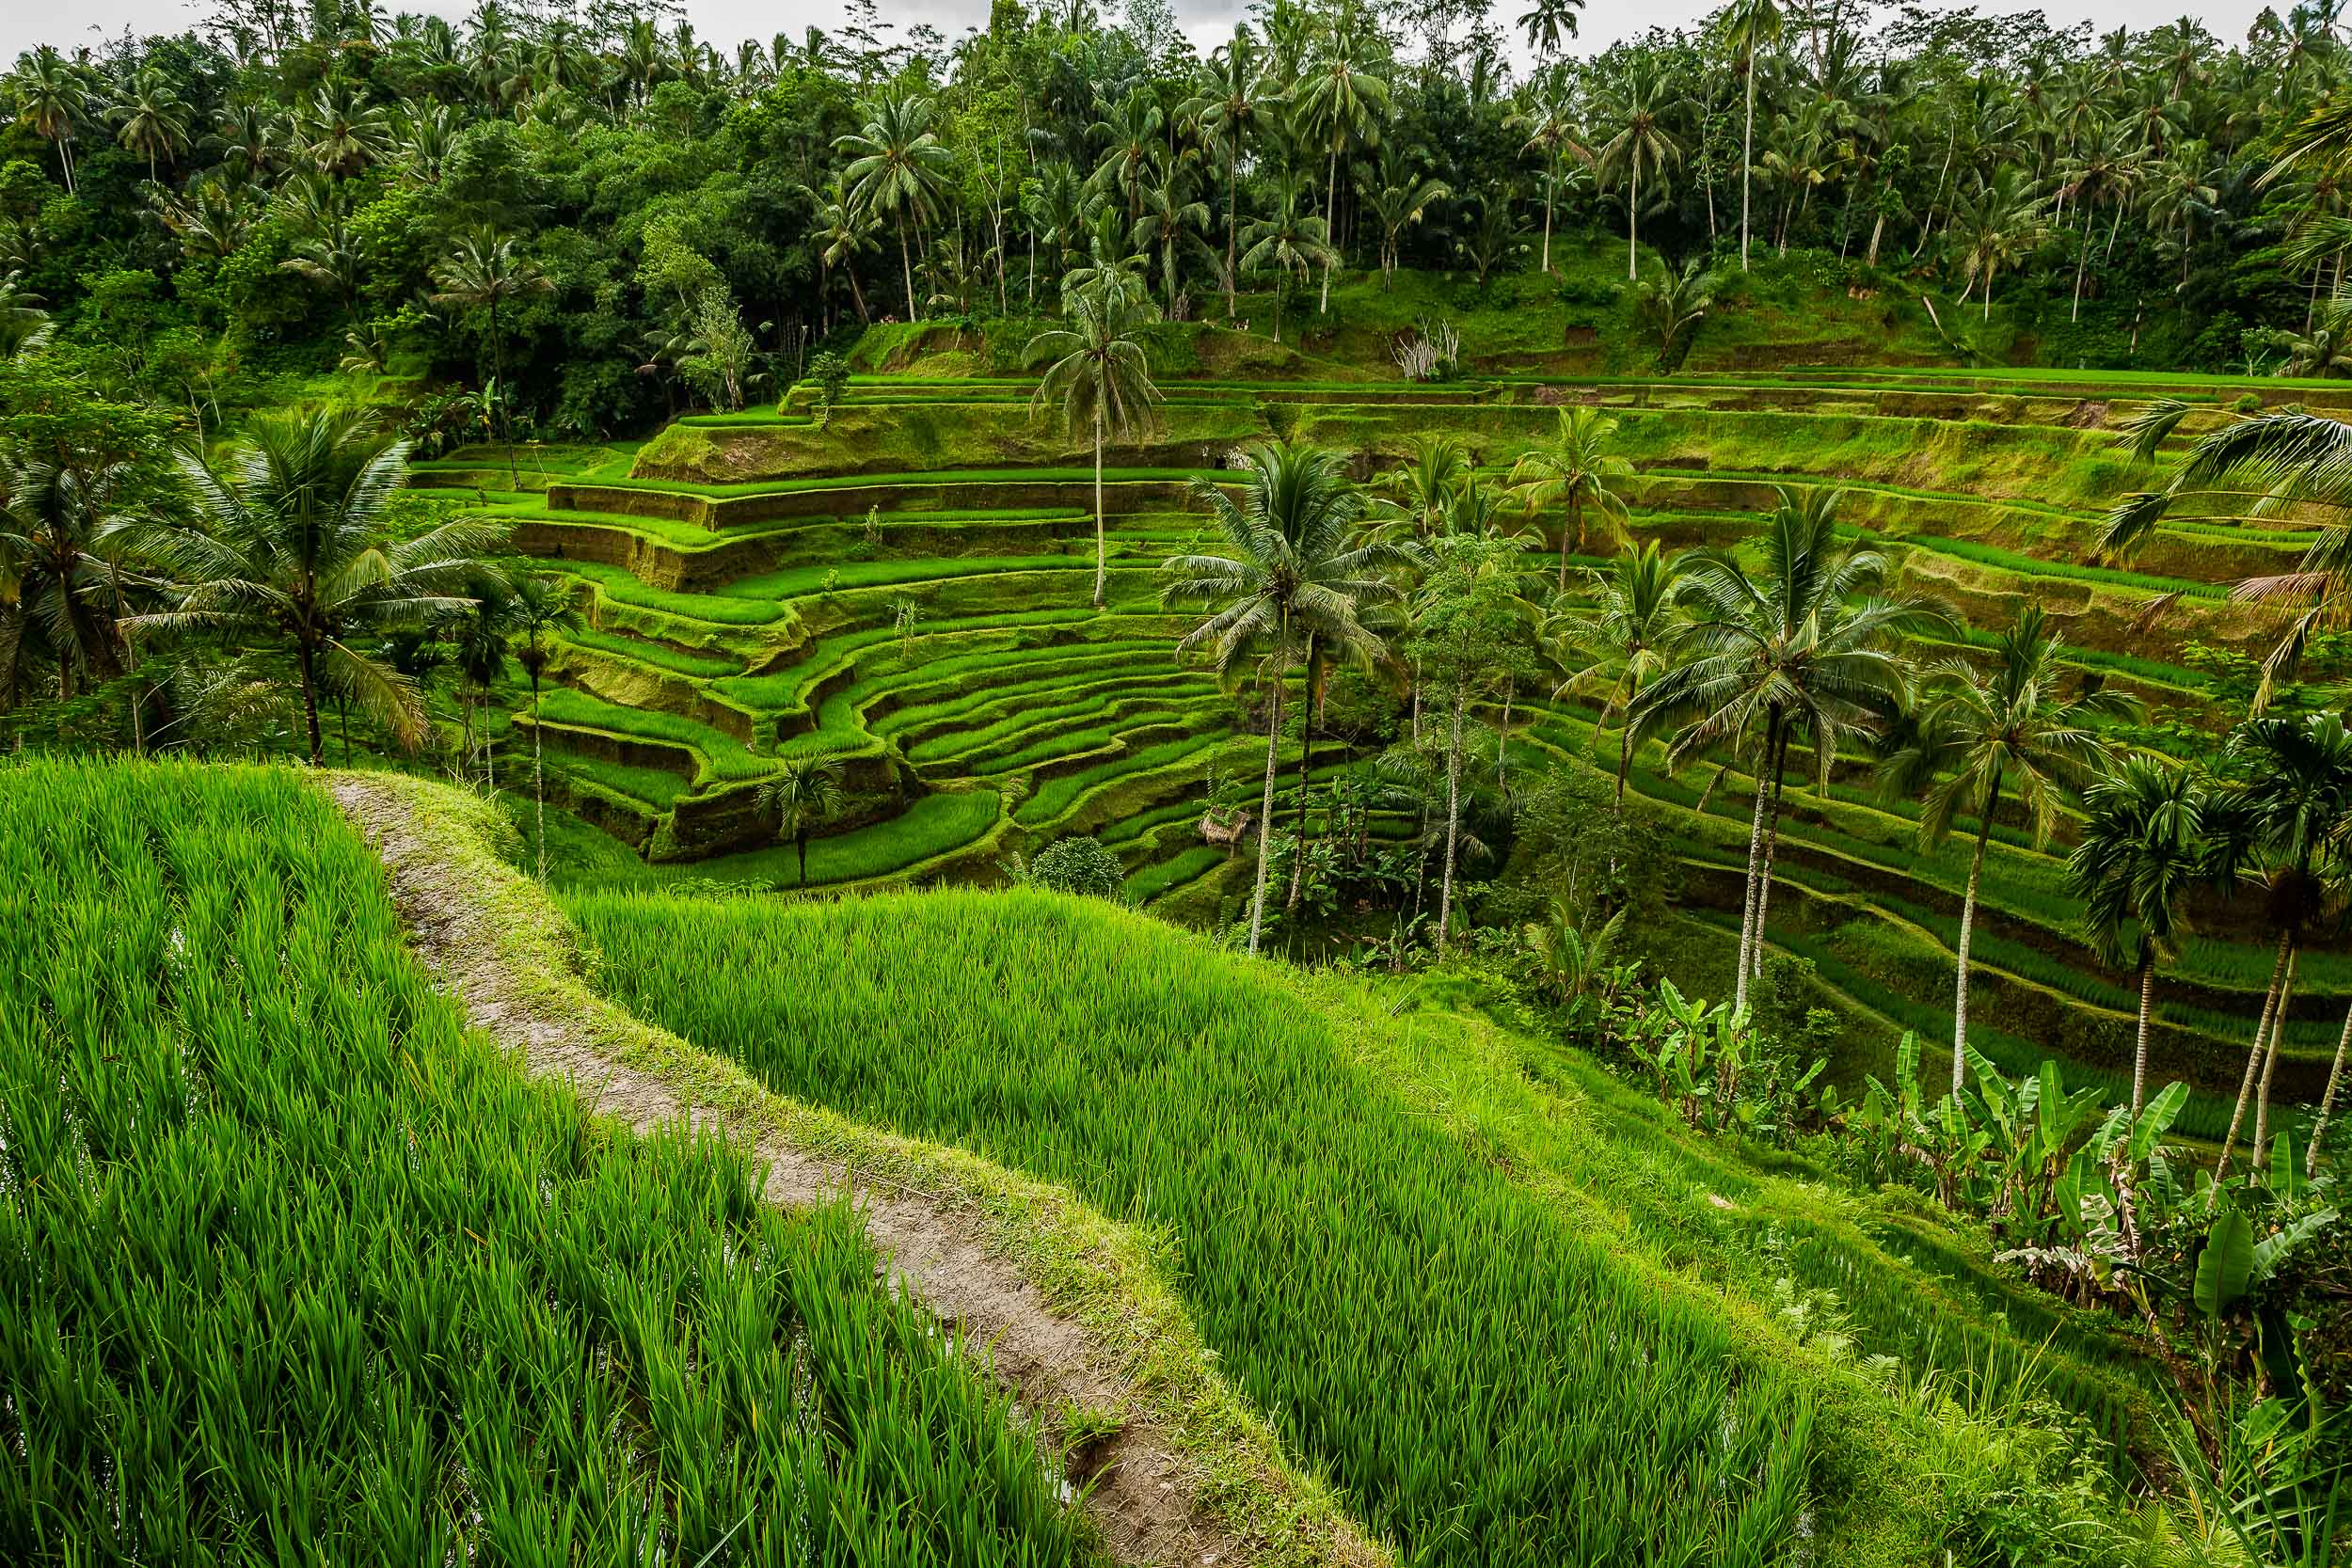 Lush  terraced rice fields  and palm trees on the island of  Bali, Indonesia